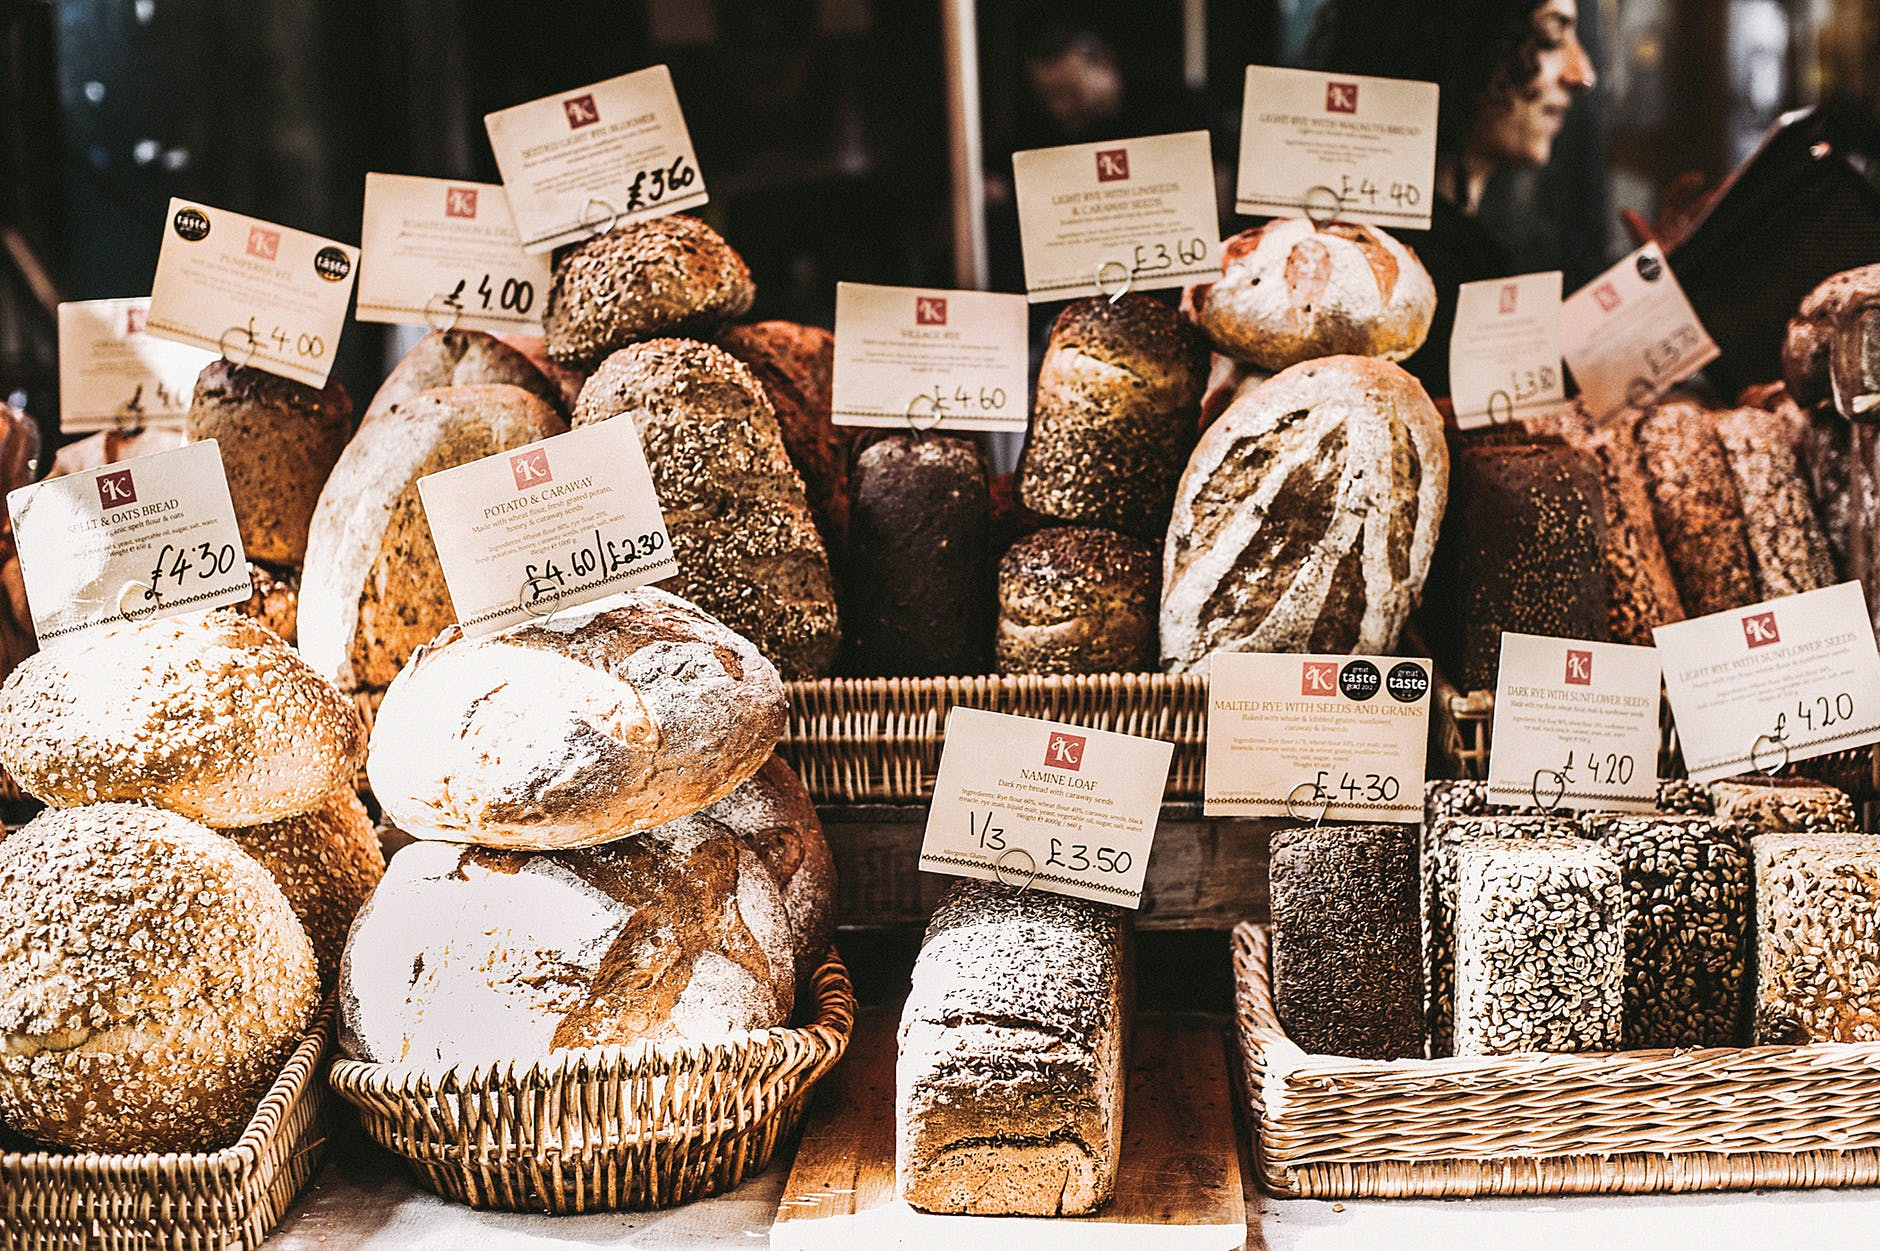 A market bread stall showing an assortment of different loaves for sale.